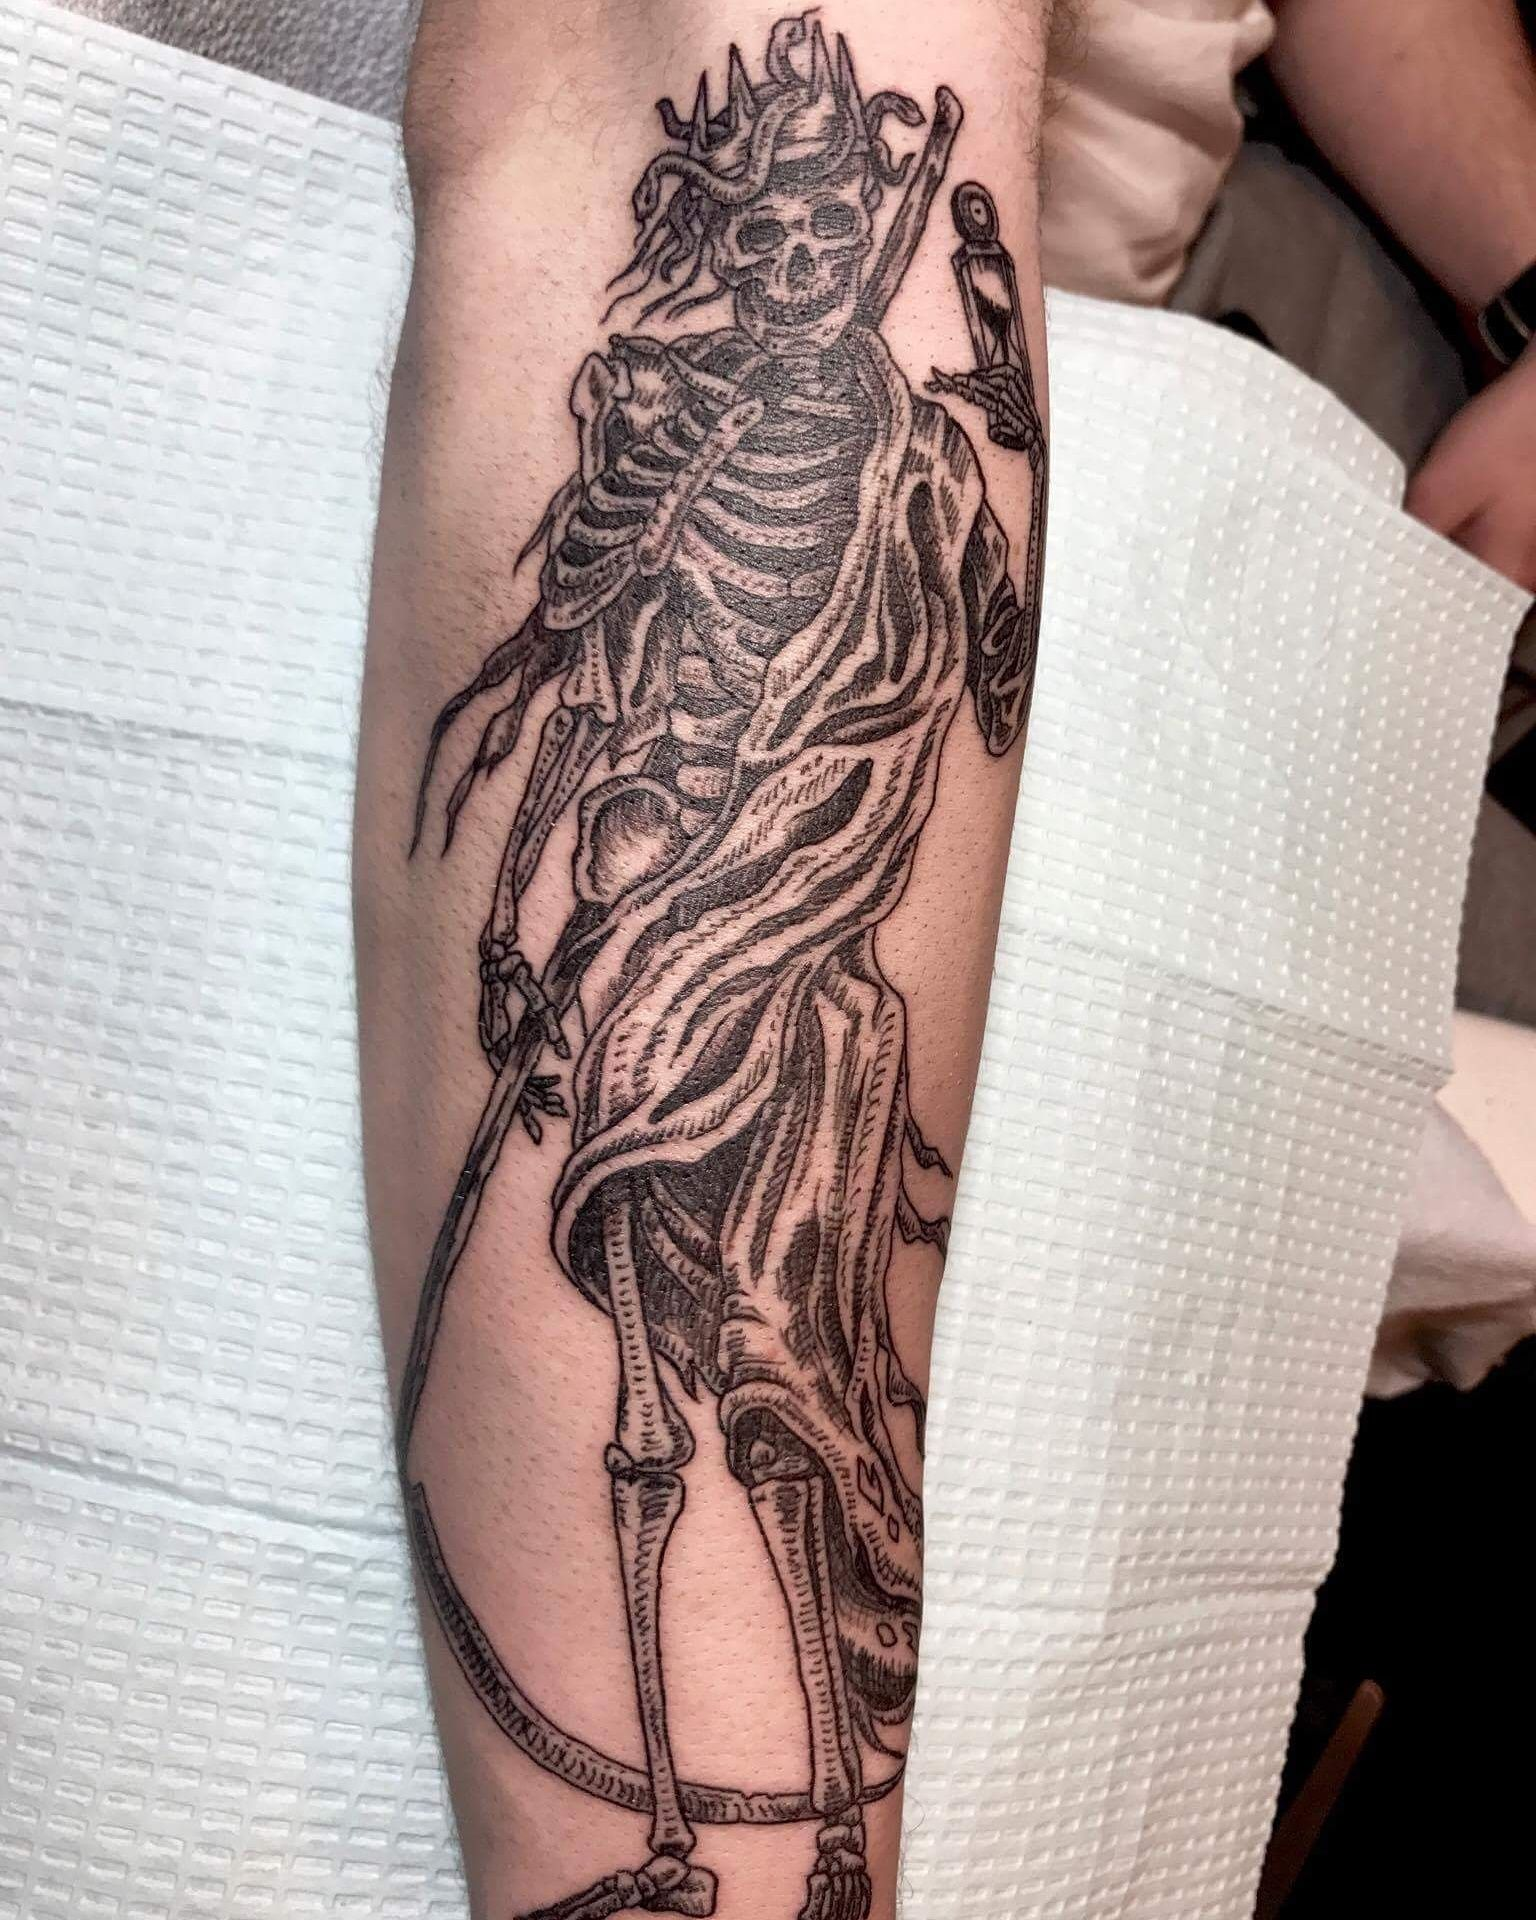 Pin by Tori Hubbard on tattoos in 2020 Japanese forearm